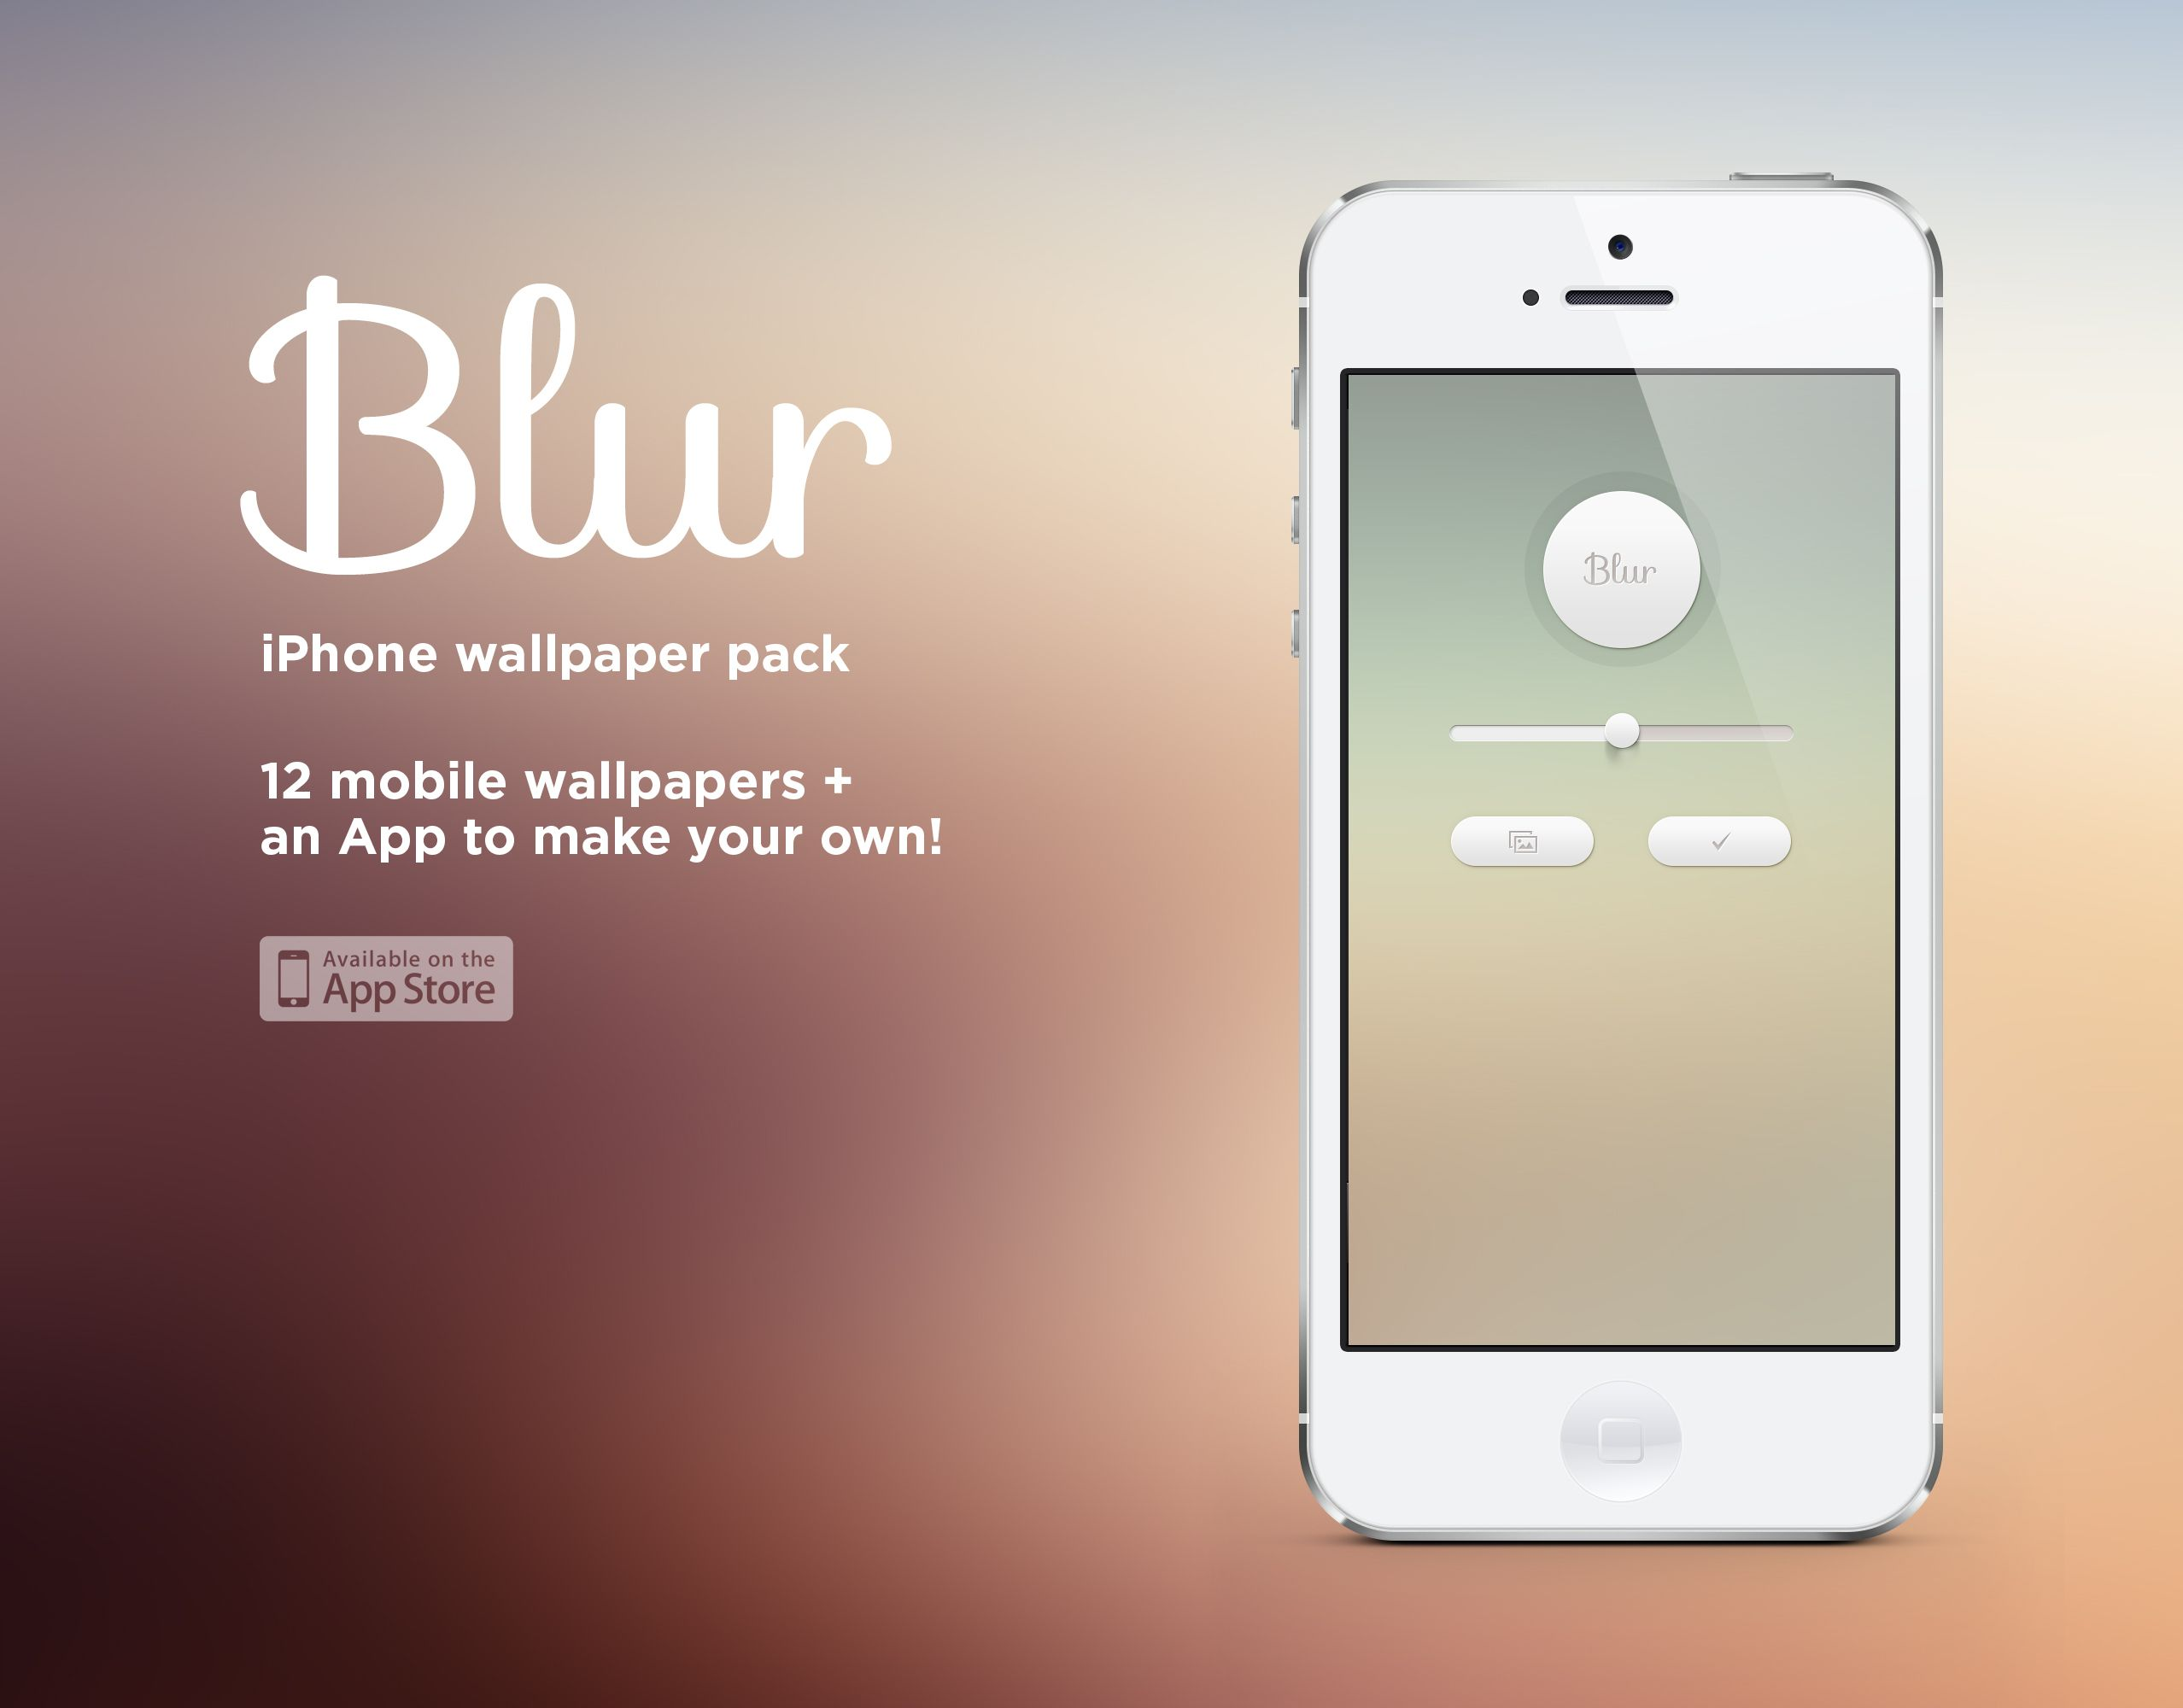 switcher blur cydia tweak to blurs your background wallpaper